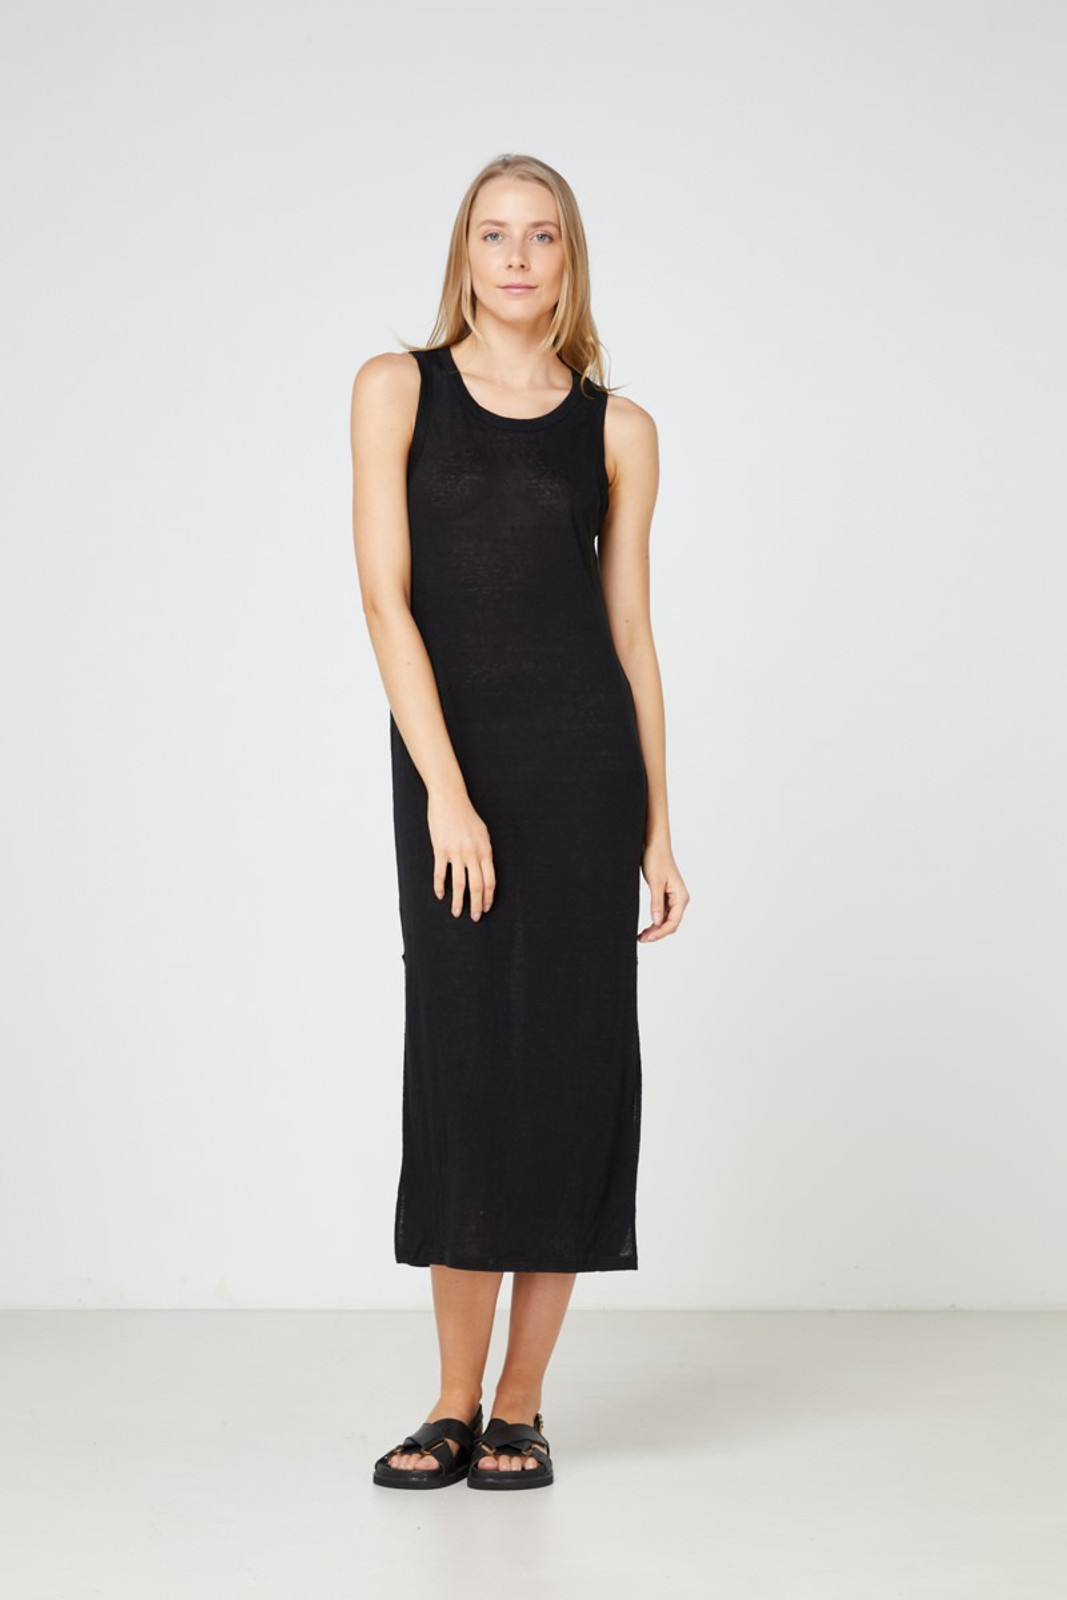 Elka Collective EC Linen Tank Dress 2.0 Black  0